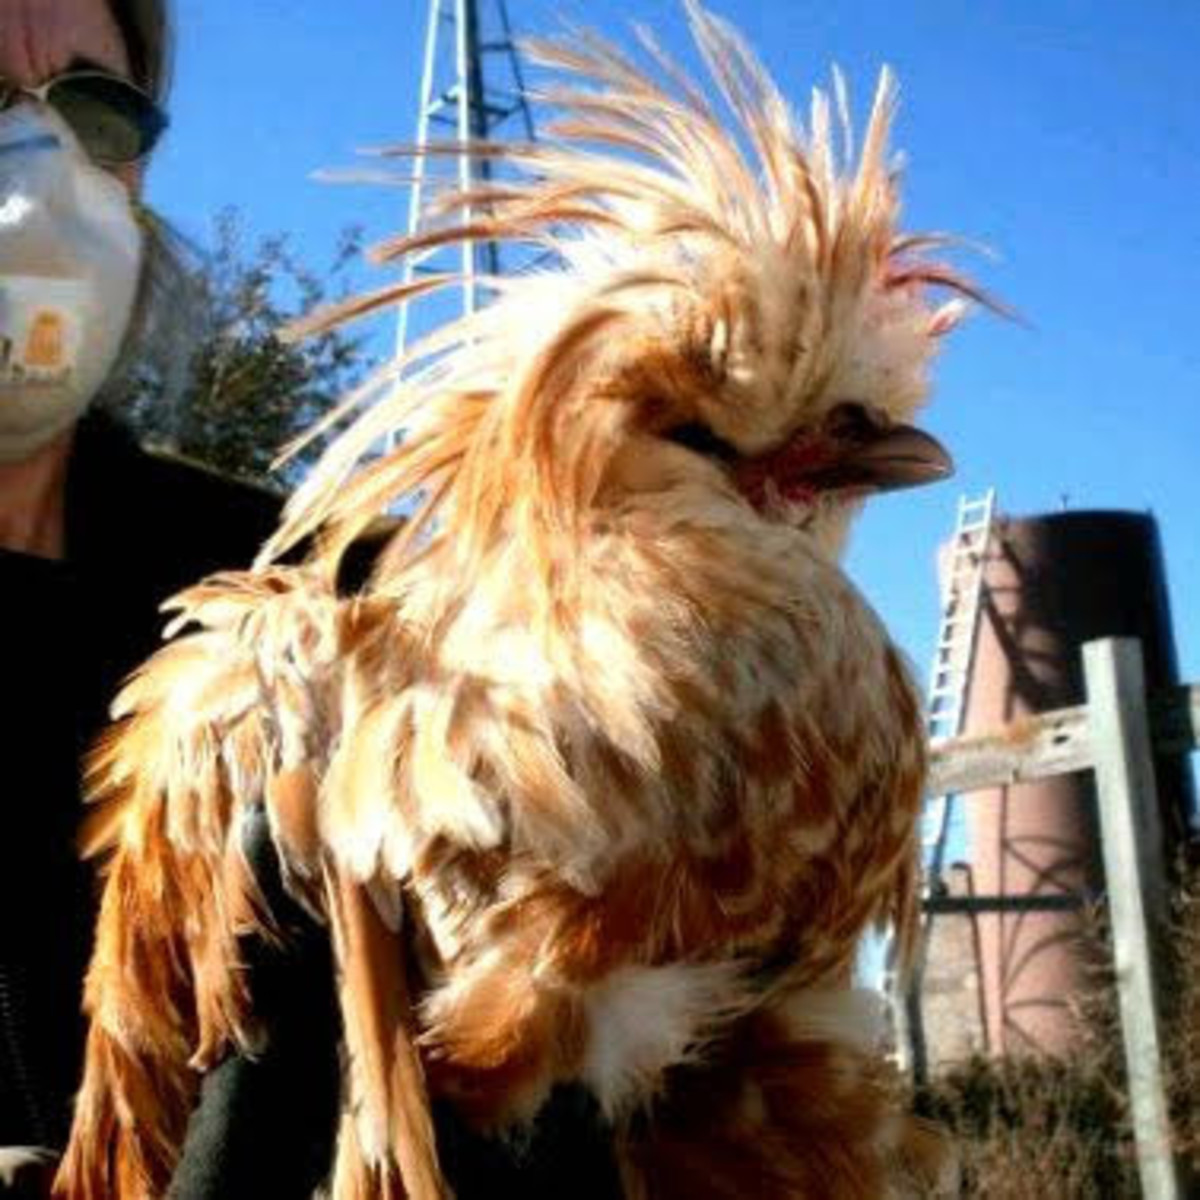 Miss Heather holds the Polish rooster to calm him before transferring him to another chicken yard. (Her mask is because of allergies.)